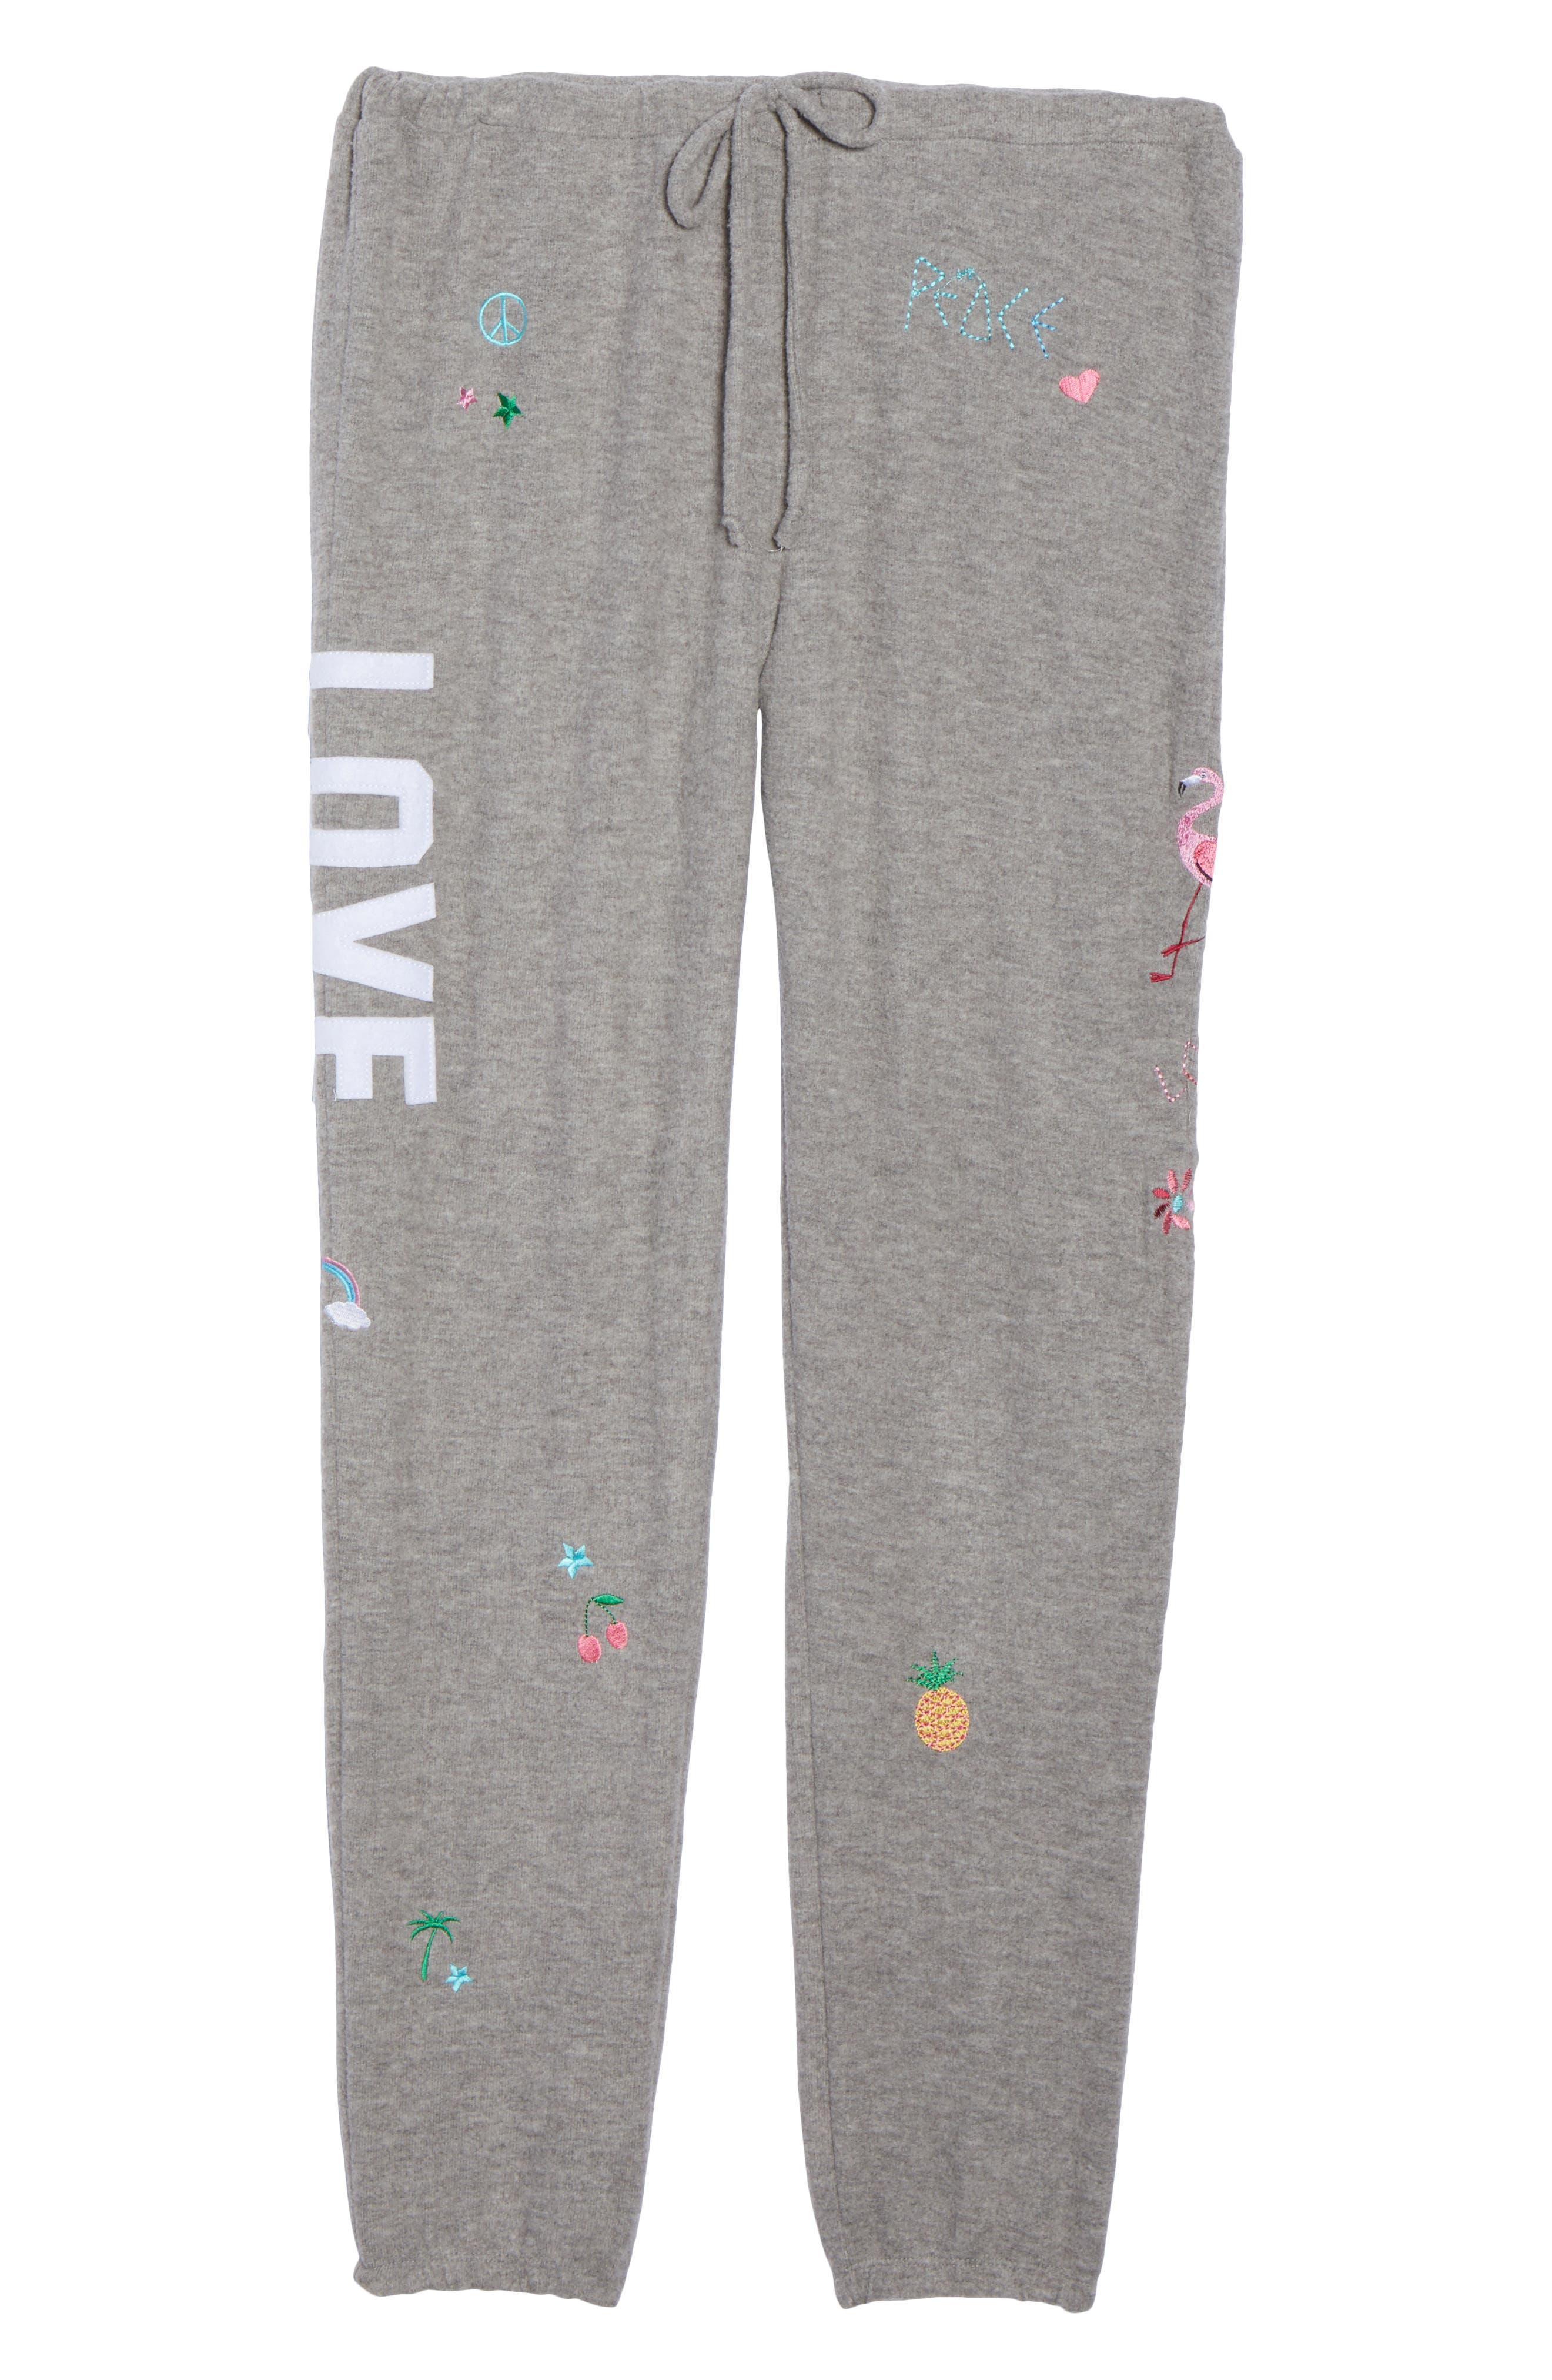 Patched Up Lounge Sweatpants,                             Alternate thumbnail 6, color,